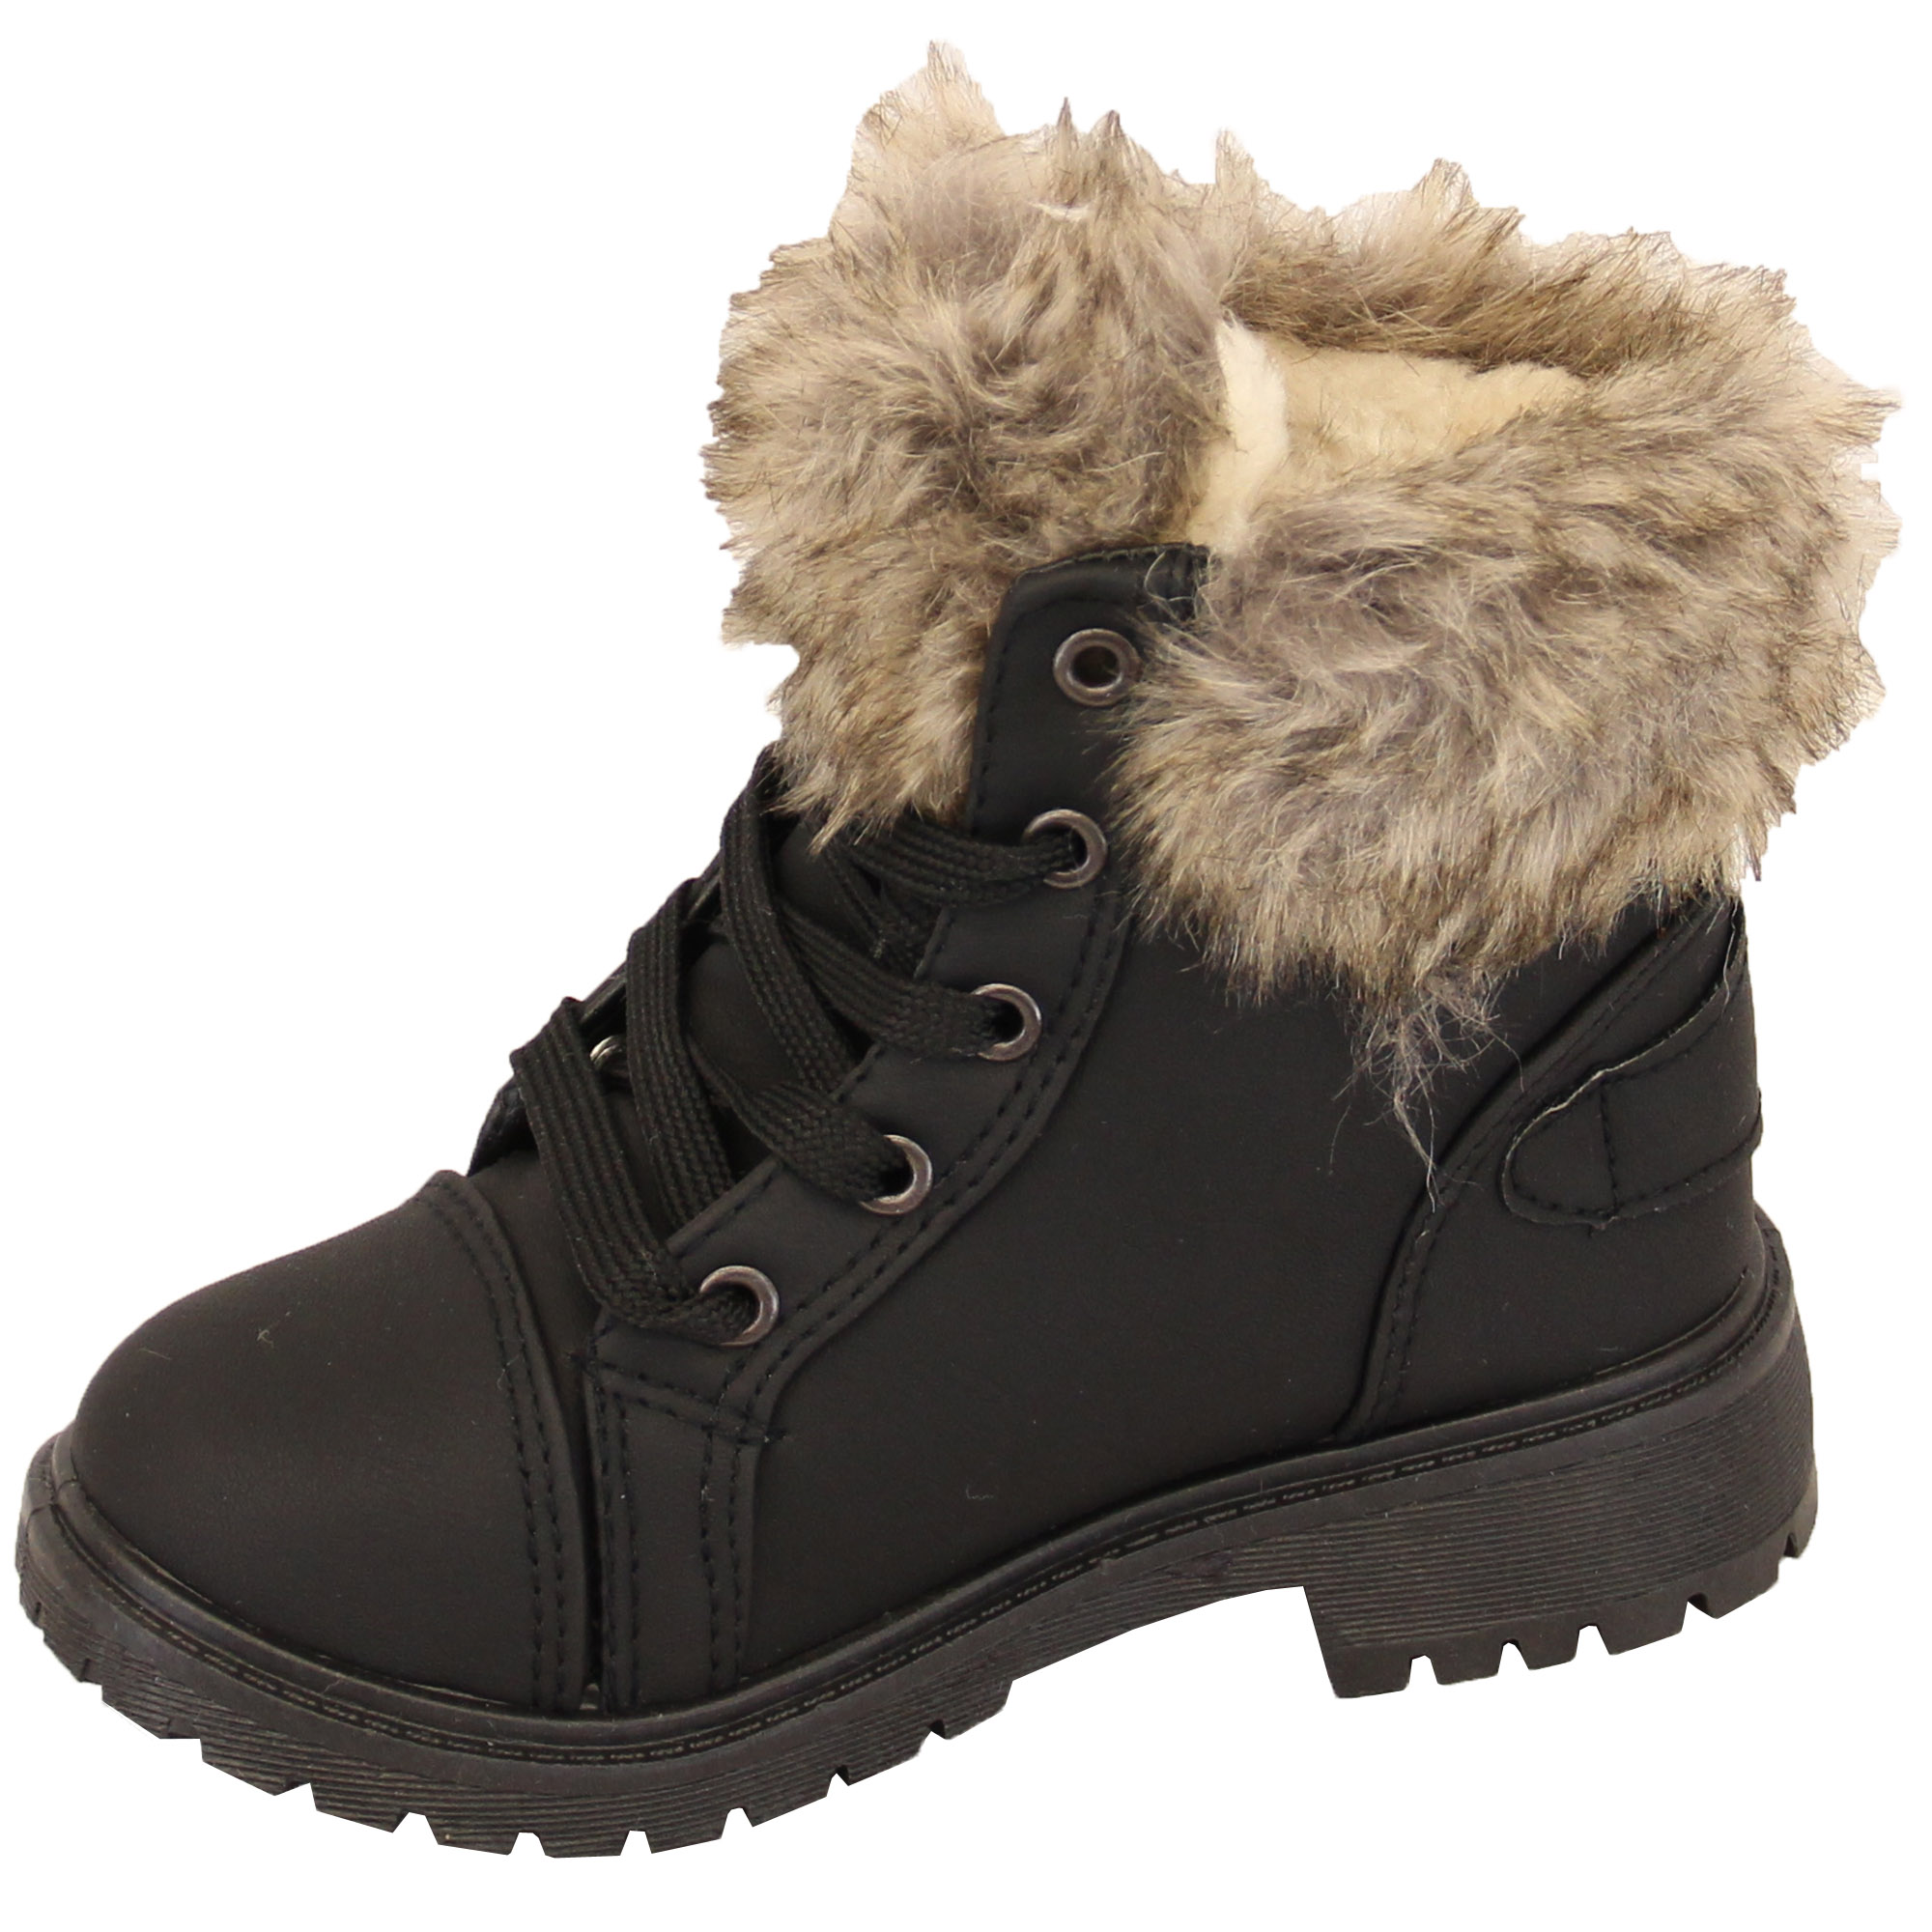 Find great deals on eBay for kids boots with fur. Shop with confidence.